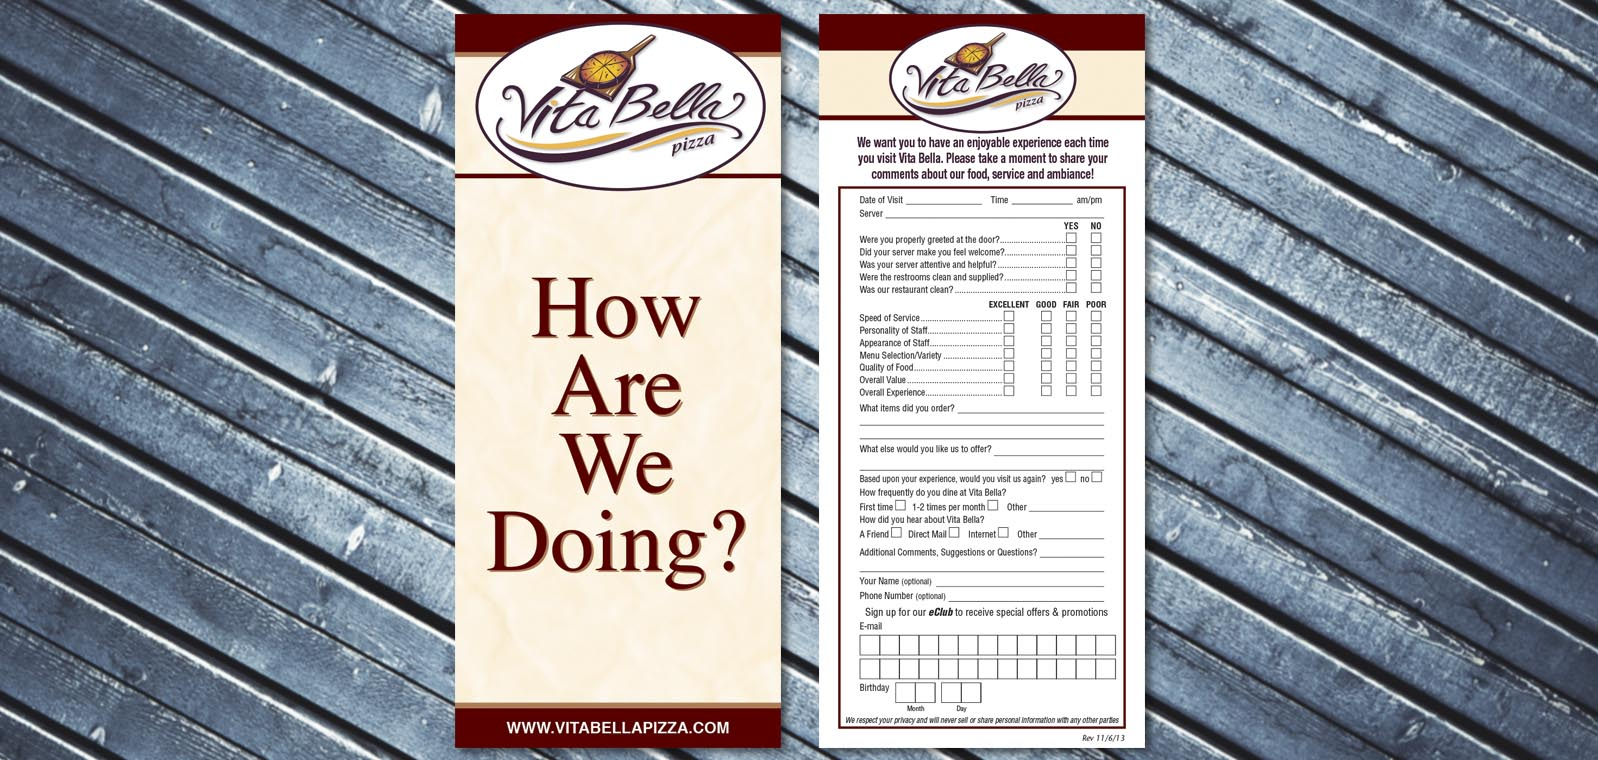 Comment Card Design from Roselle Graphic Designer Controlled Color, Inc.